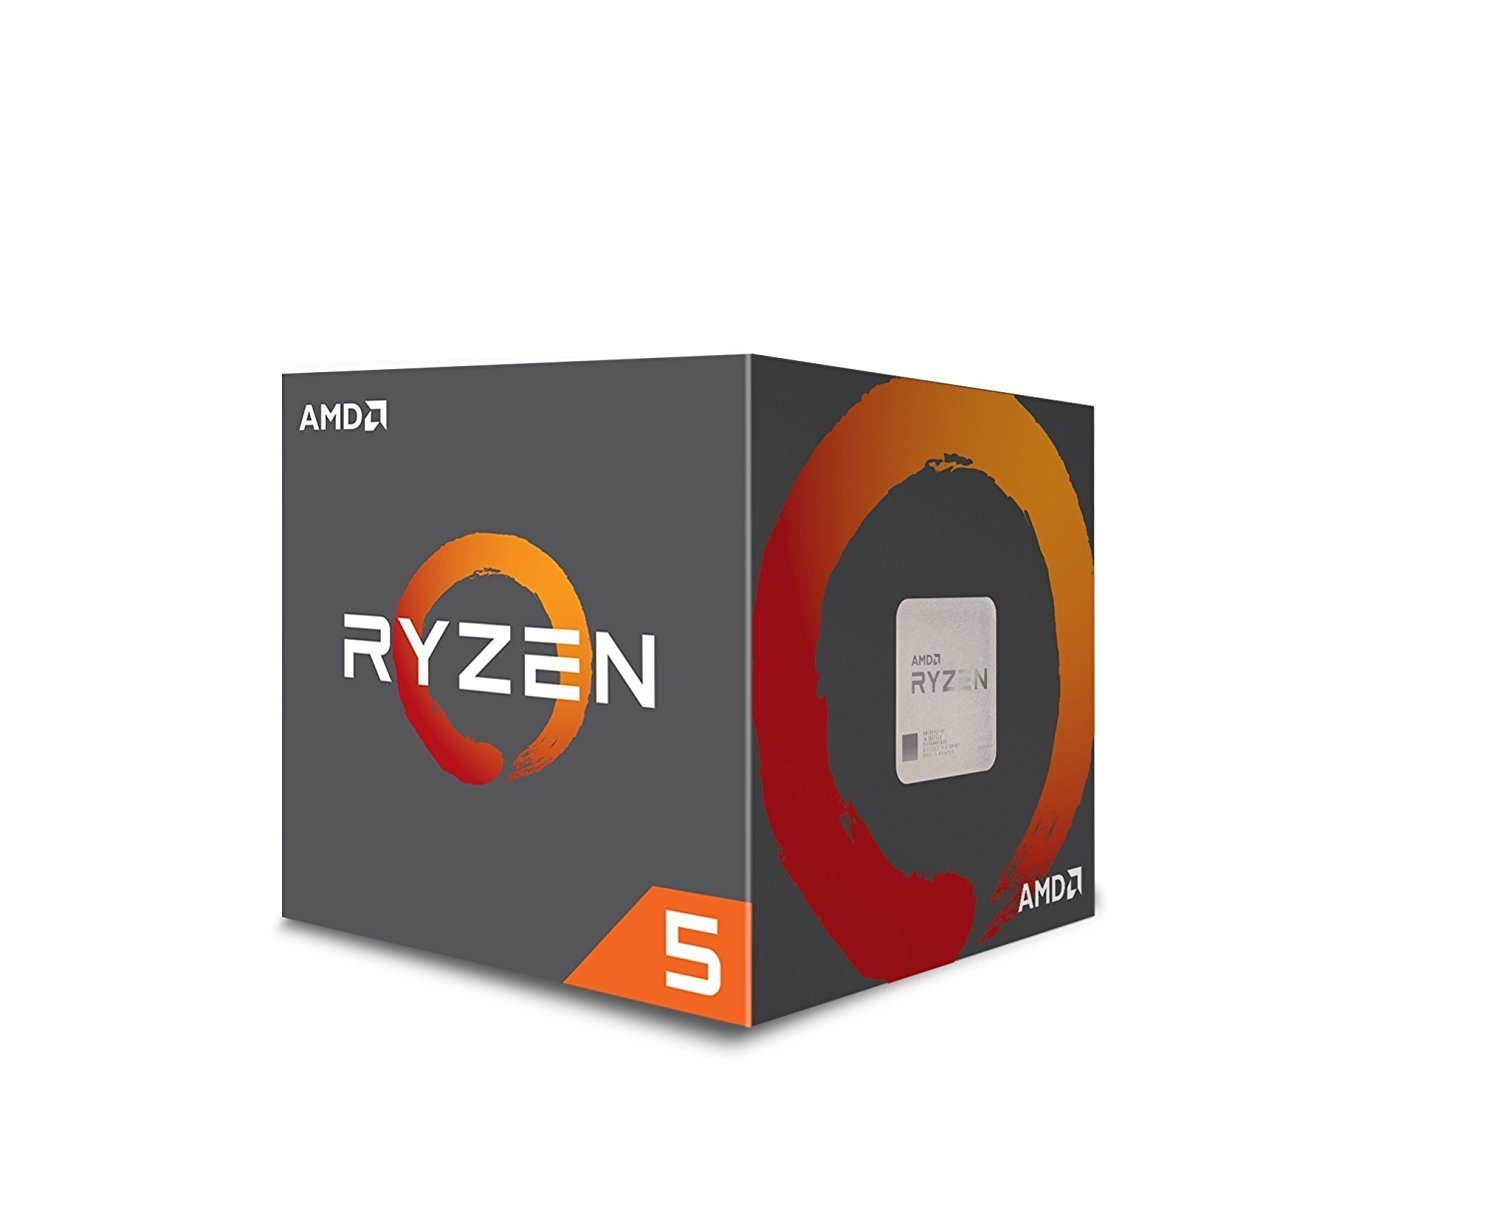 AMD RYZEN 5 1400 3.2 GHz AM4